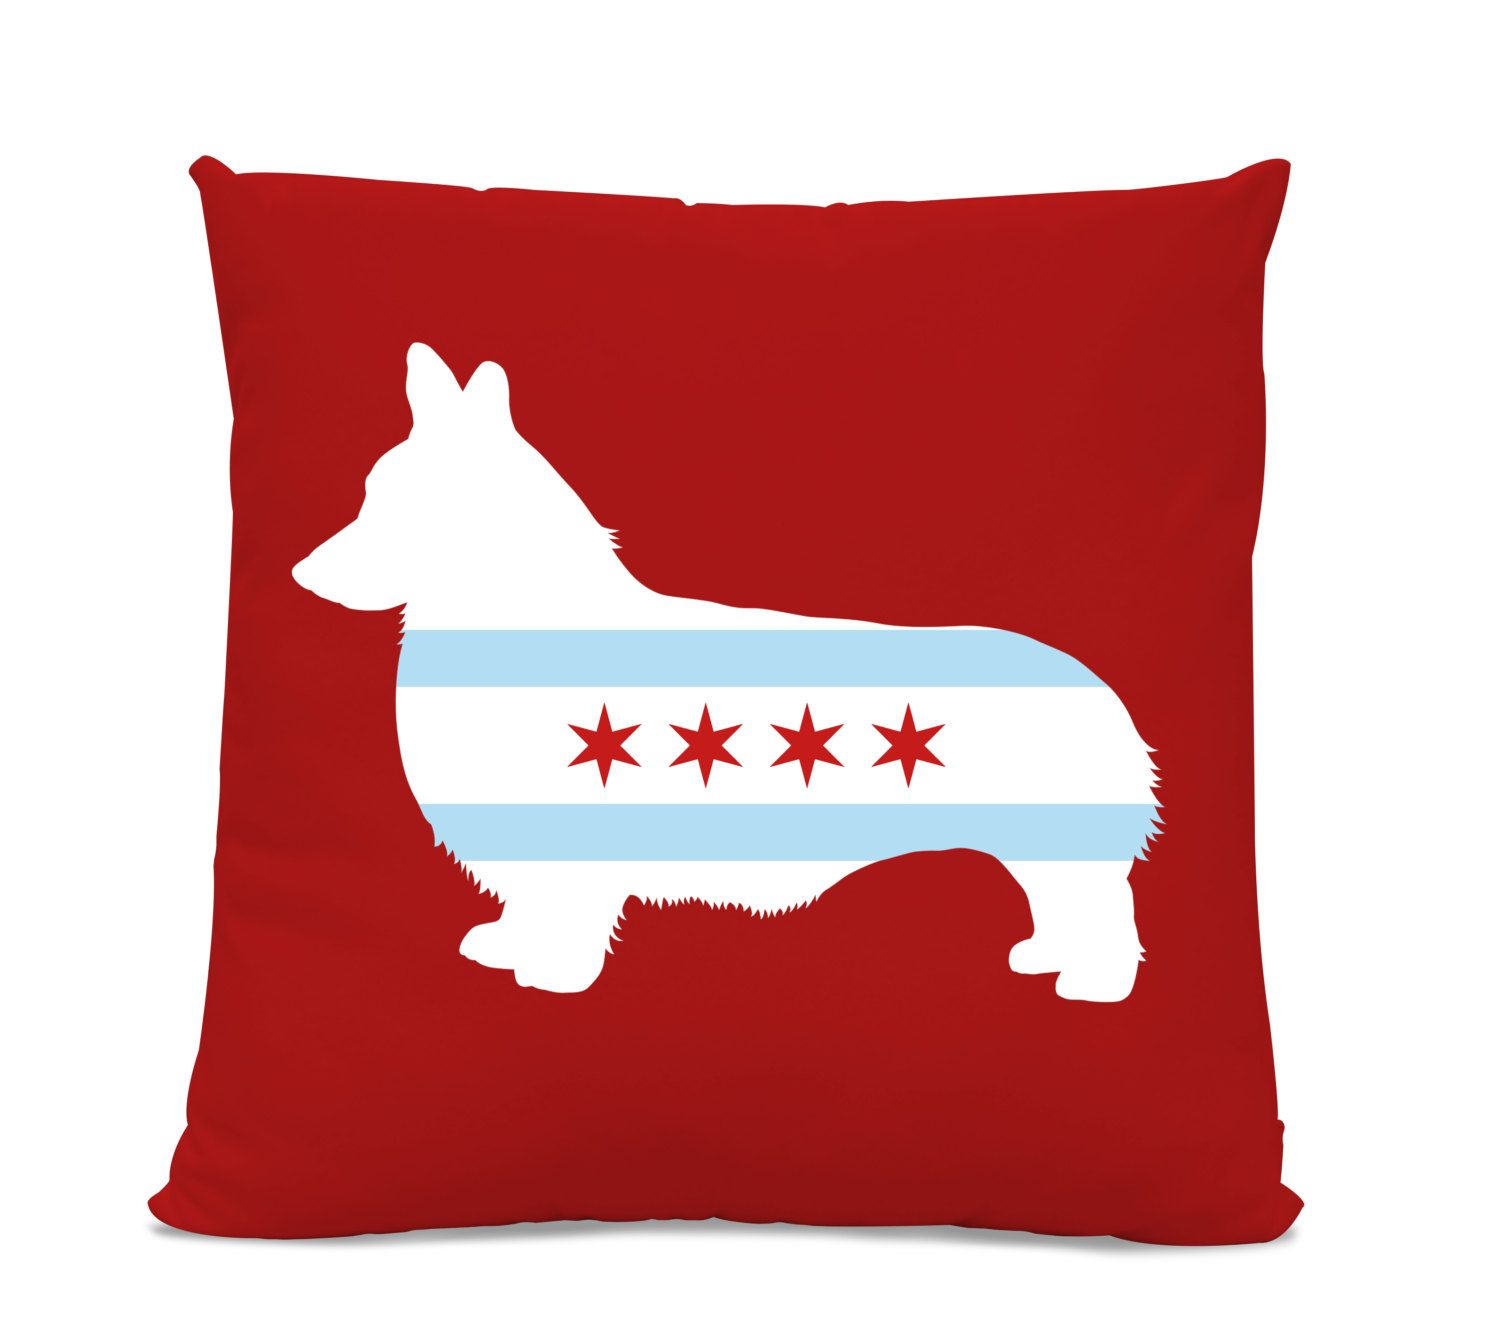 Superbe Chicago Flag Corgi Pillow   Chicago Home Decor   Corgi Pillow   Dog Breed  Silhouette Pillow